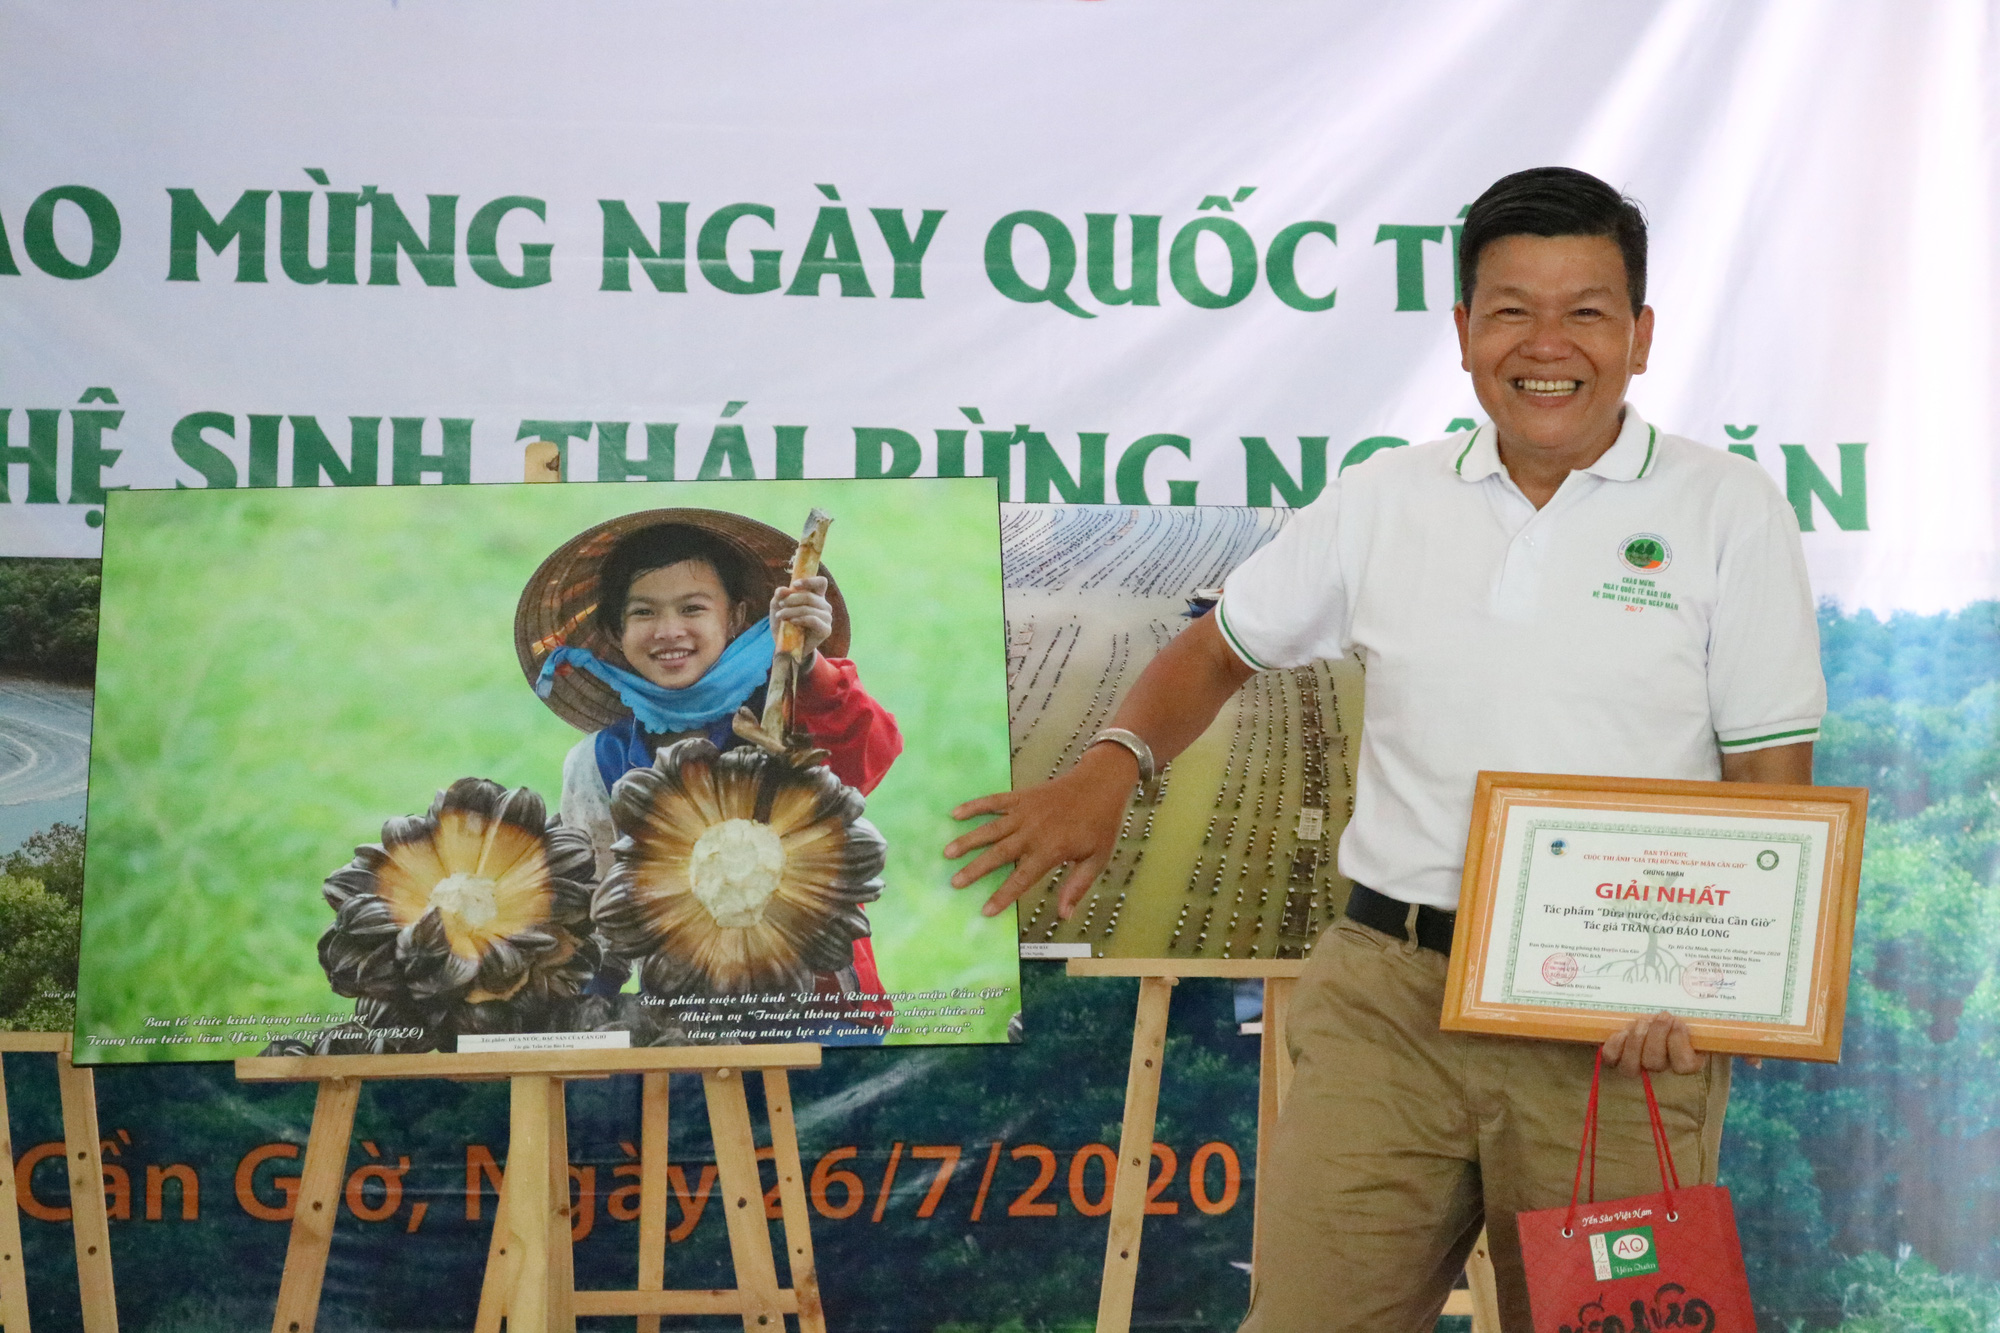 Photographer Tran Cao Bao Long poses for a photo next to his first-prize winning photo, which he said he had taken by chance during a trip to Can Gio District, Ho Chi Minh City. Photo: Anh Trinh / Tuoi Tre